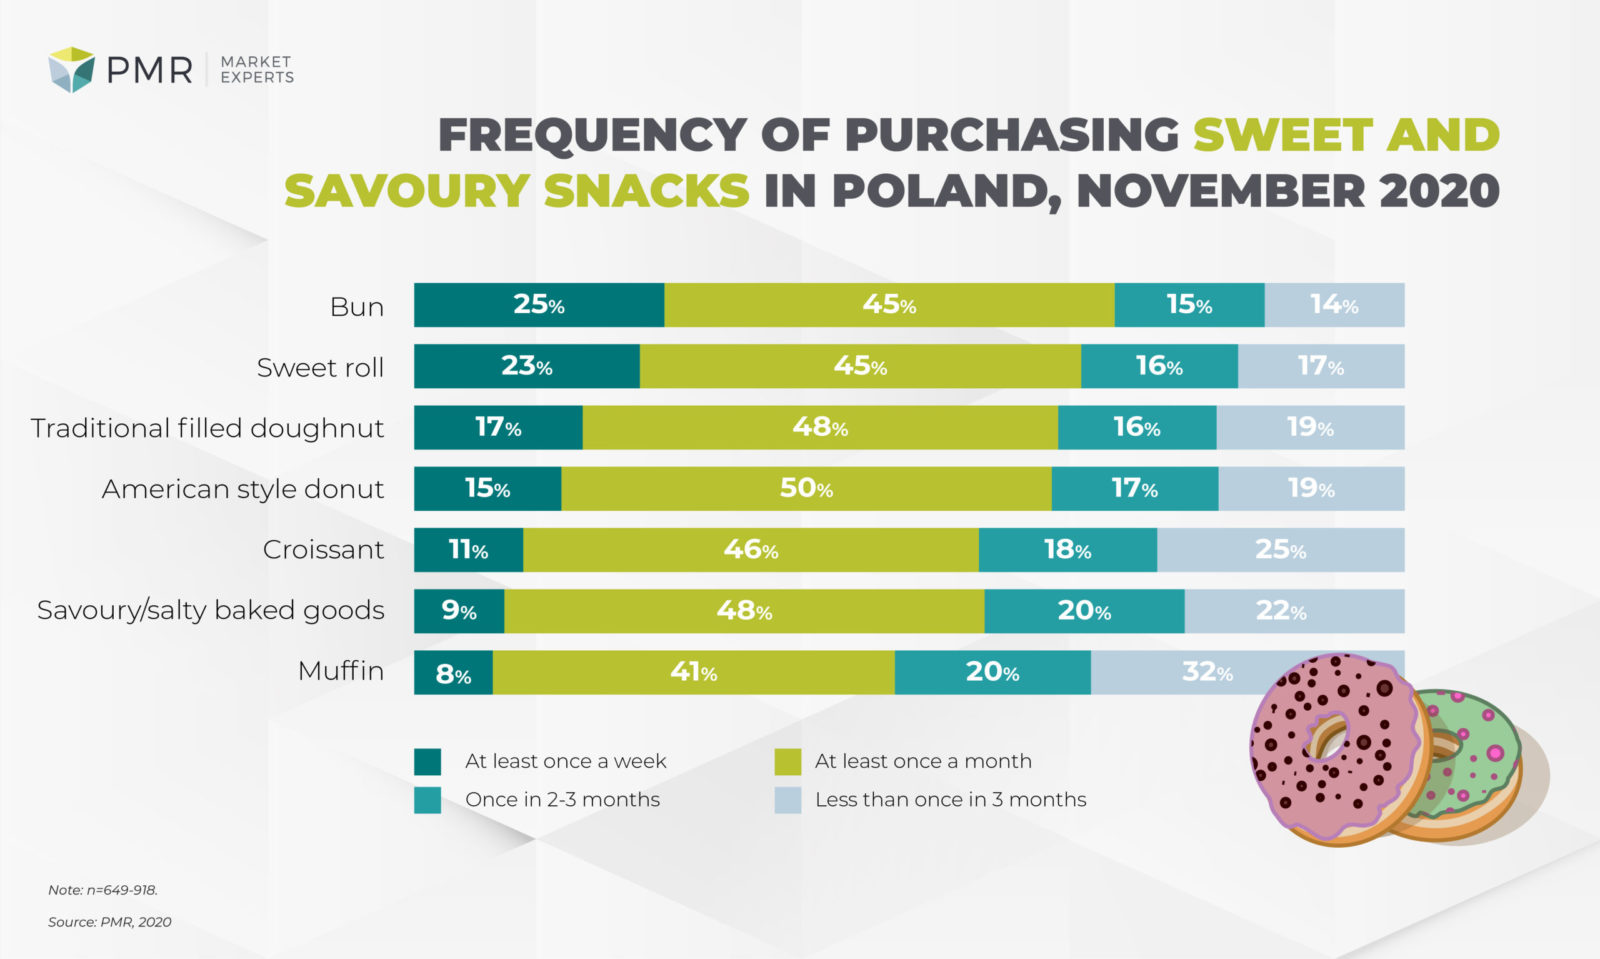 Frequency of purchasing sweet and savory baked snacks in Polans